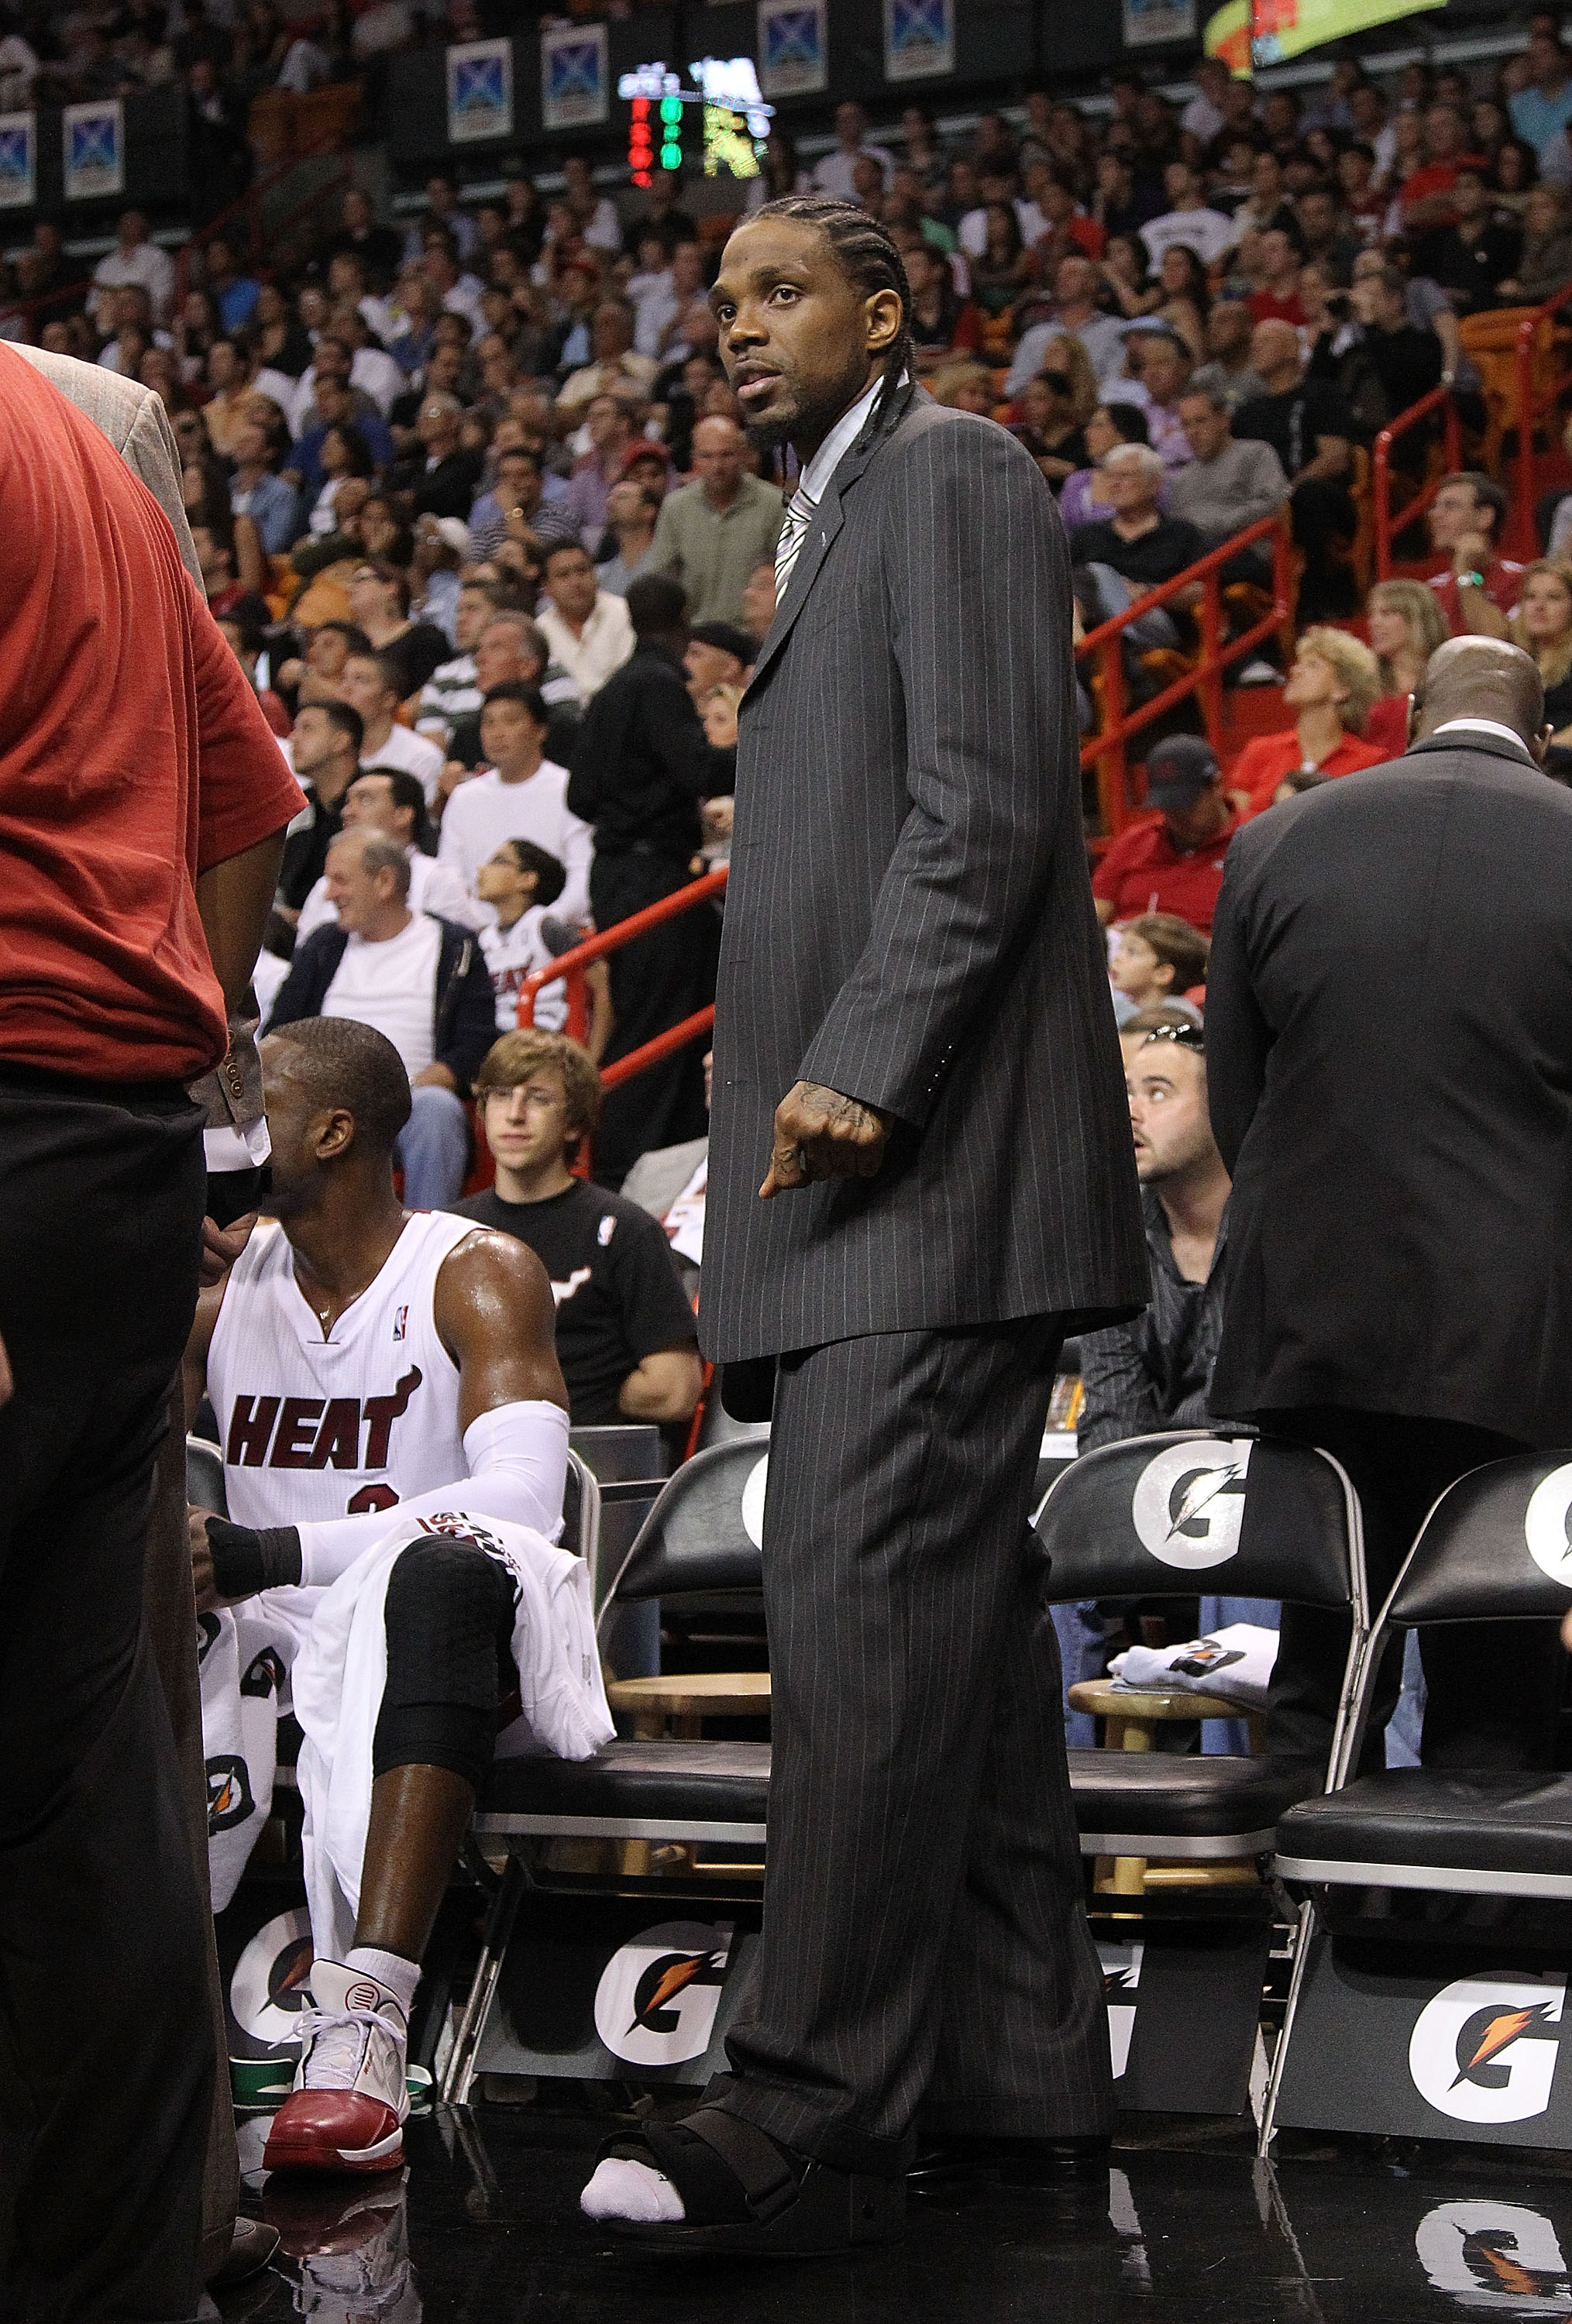 Unfortunately the Heat's crazy guy is injured....